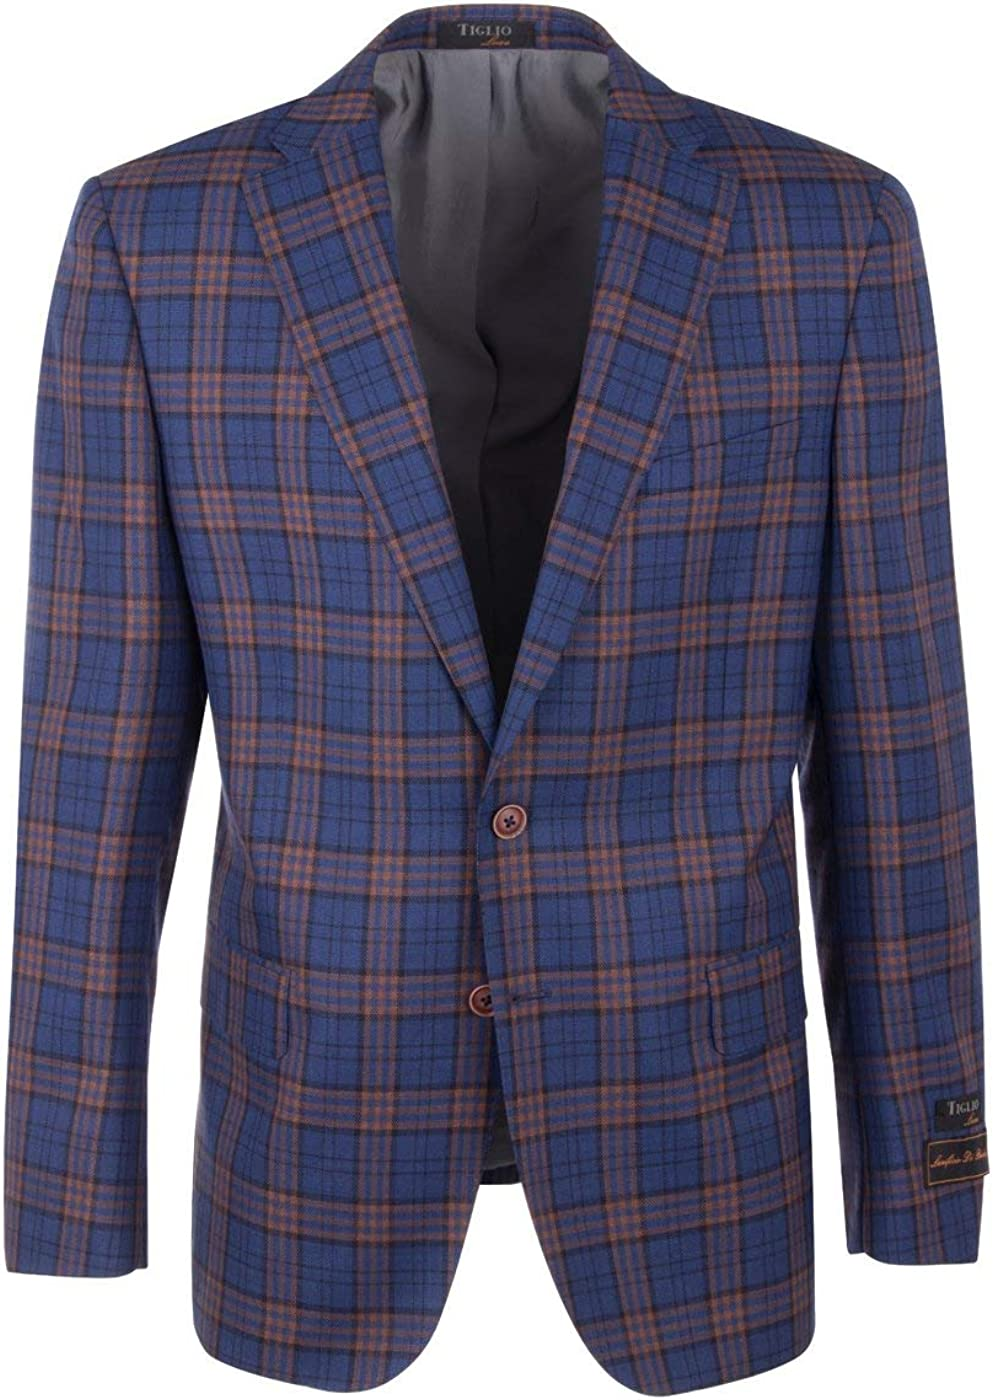 Tiglio Dolcetto French Blue with Black and Orange Windowpane Modern Fit, Pure Wool Jacket Luxe 7223M302/1